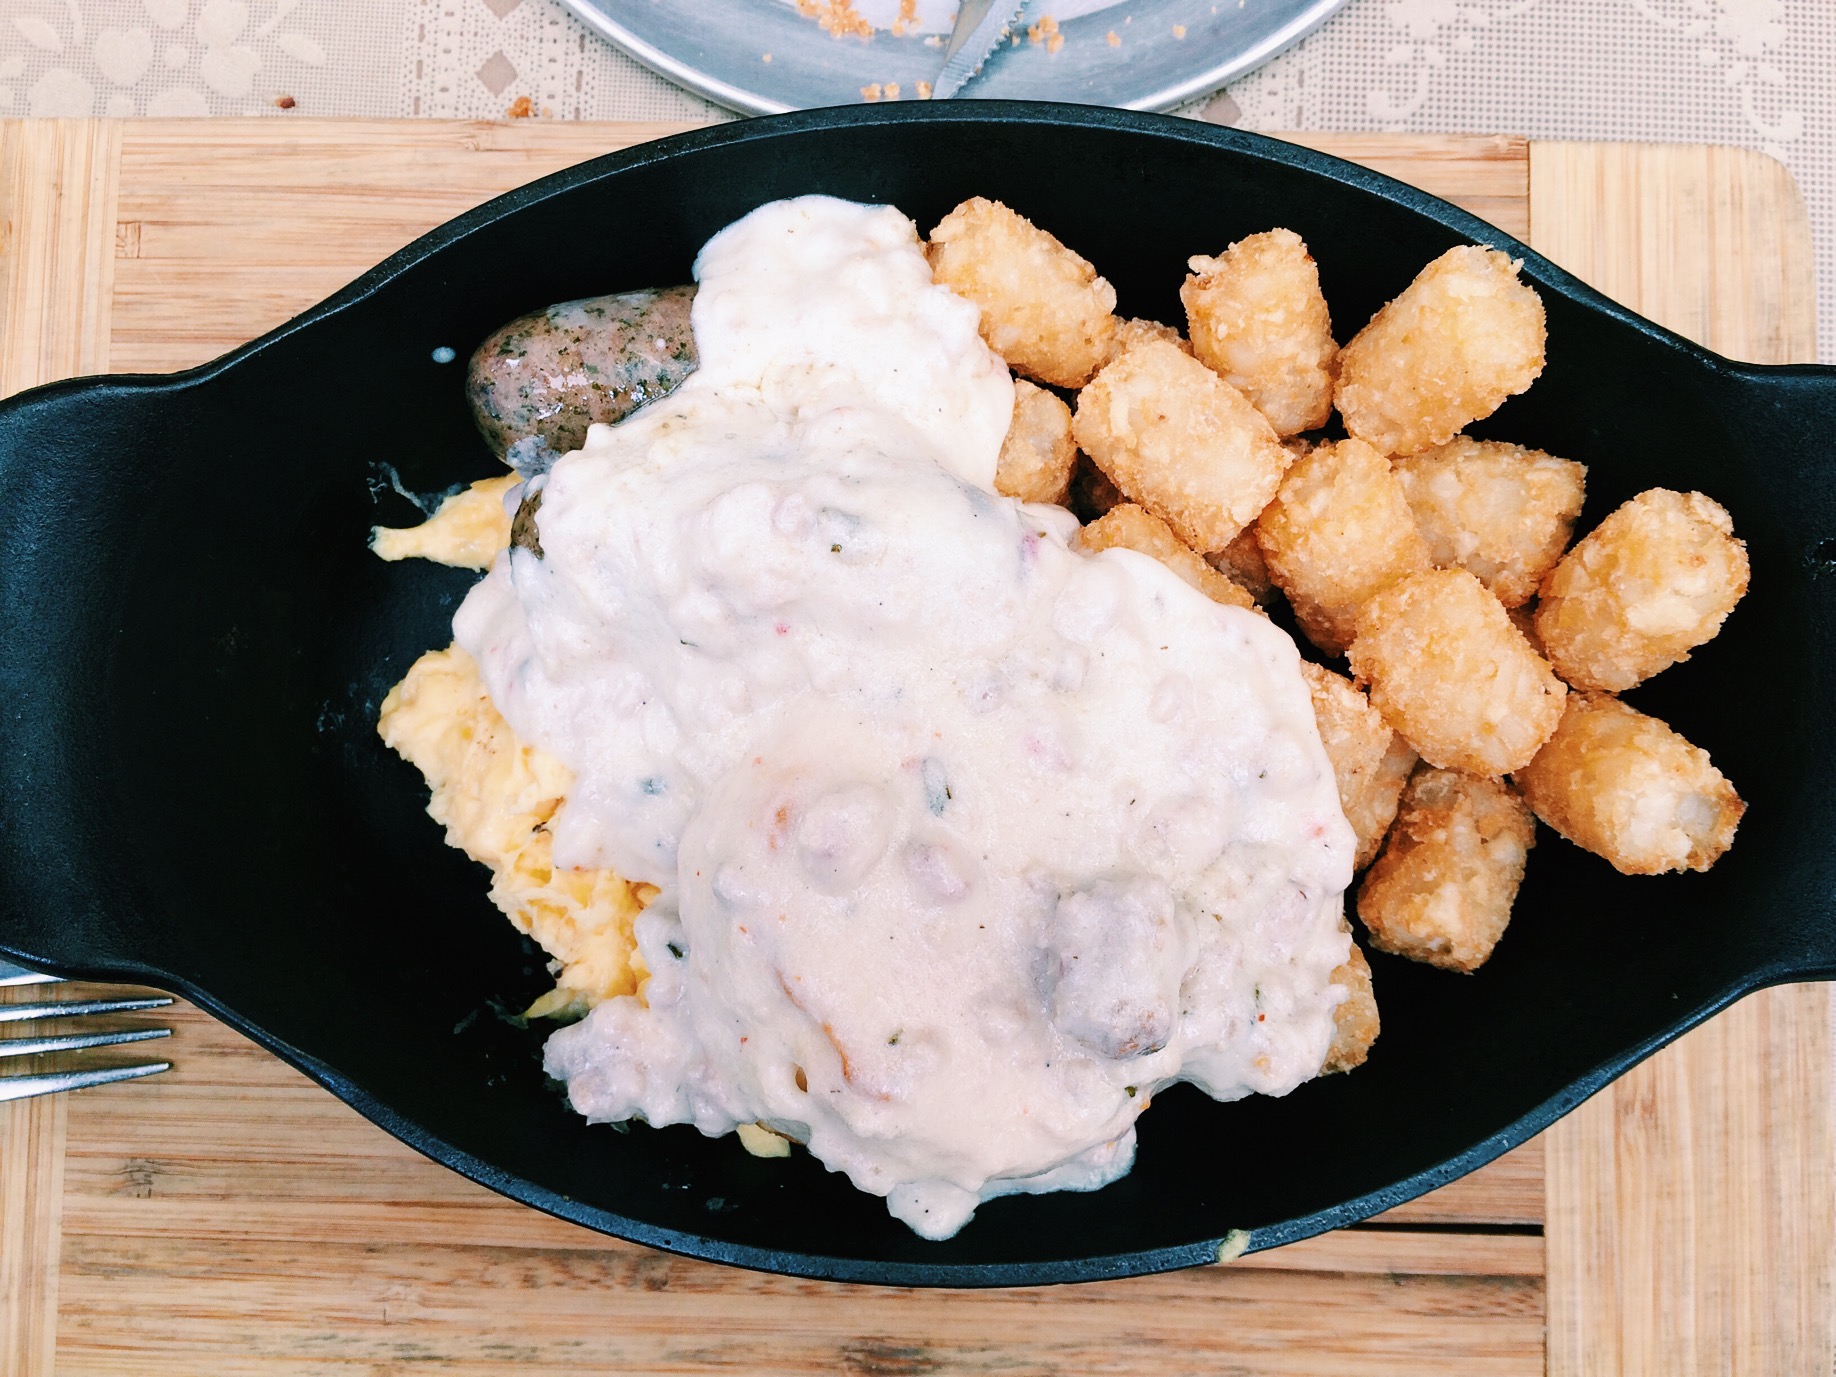 The Cure, probably for your hangover. Biscuit, tots, sausage, eggs, and gravy.